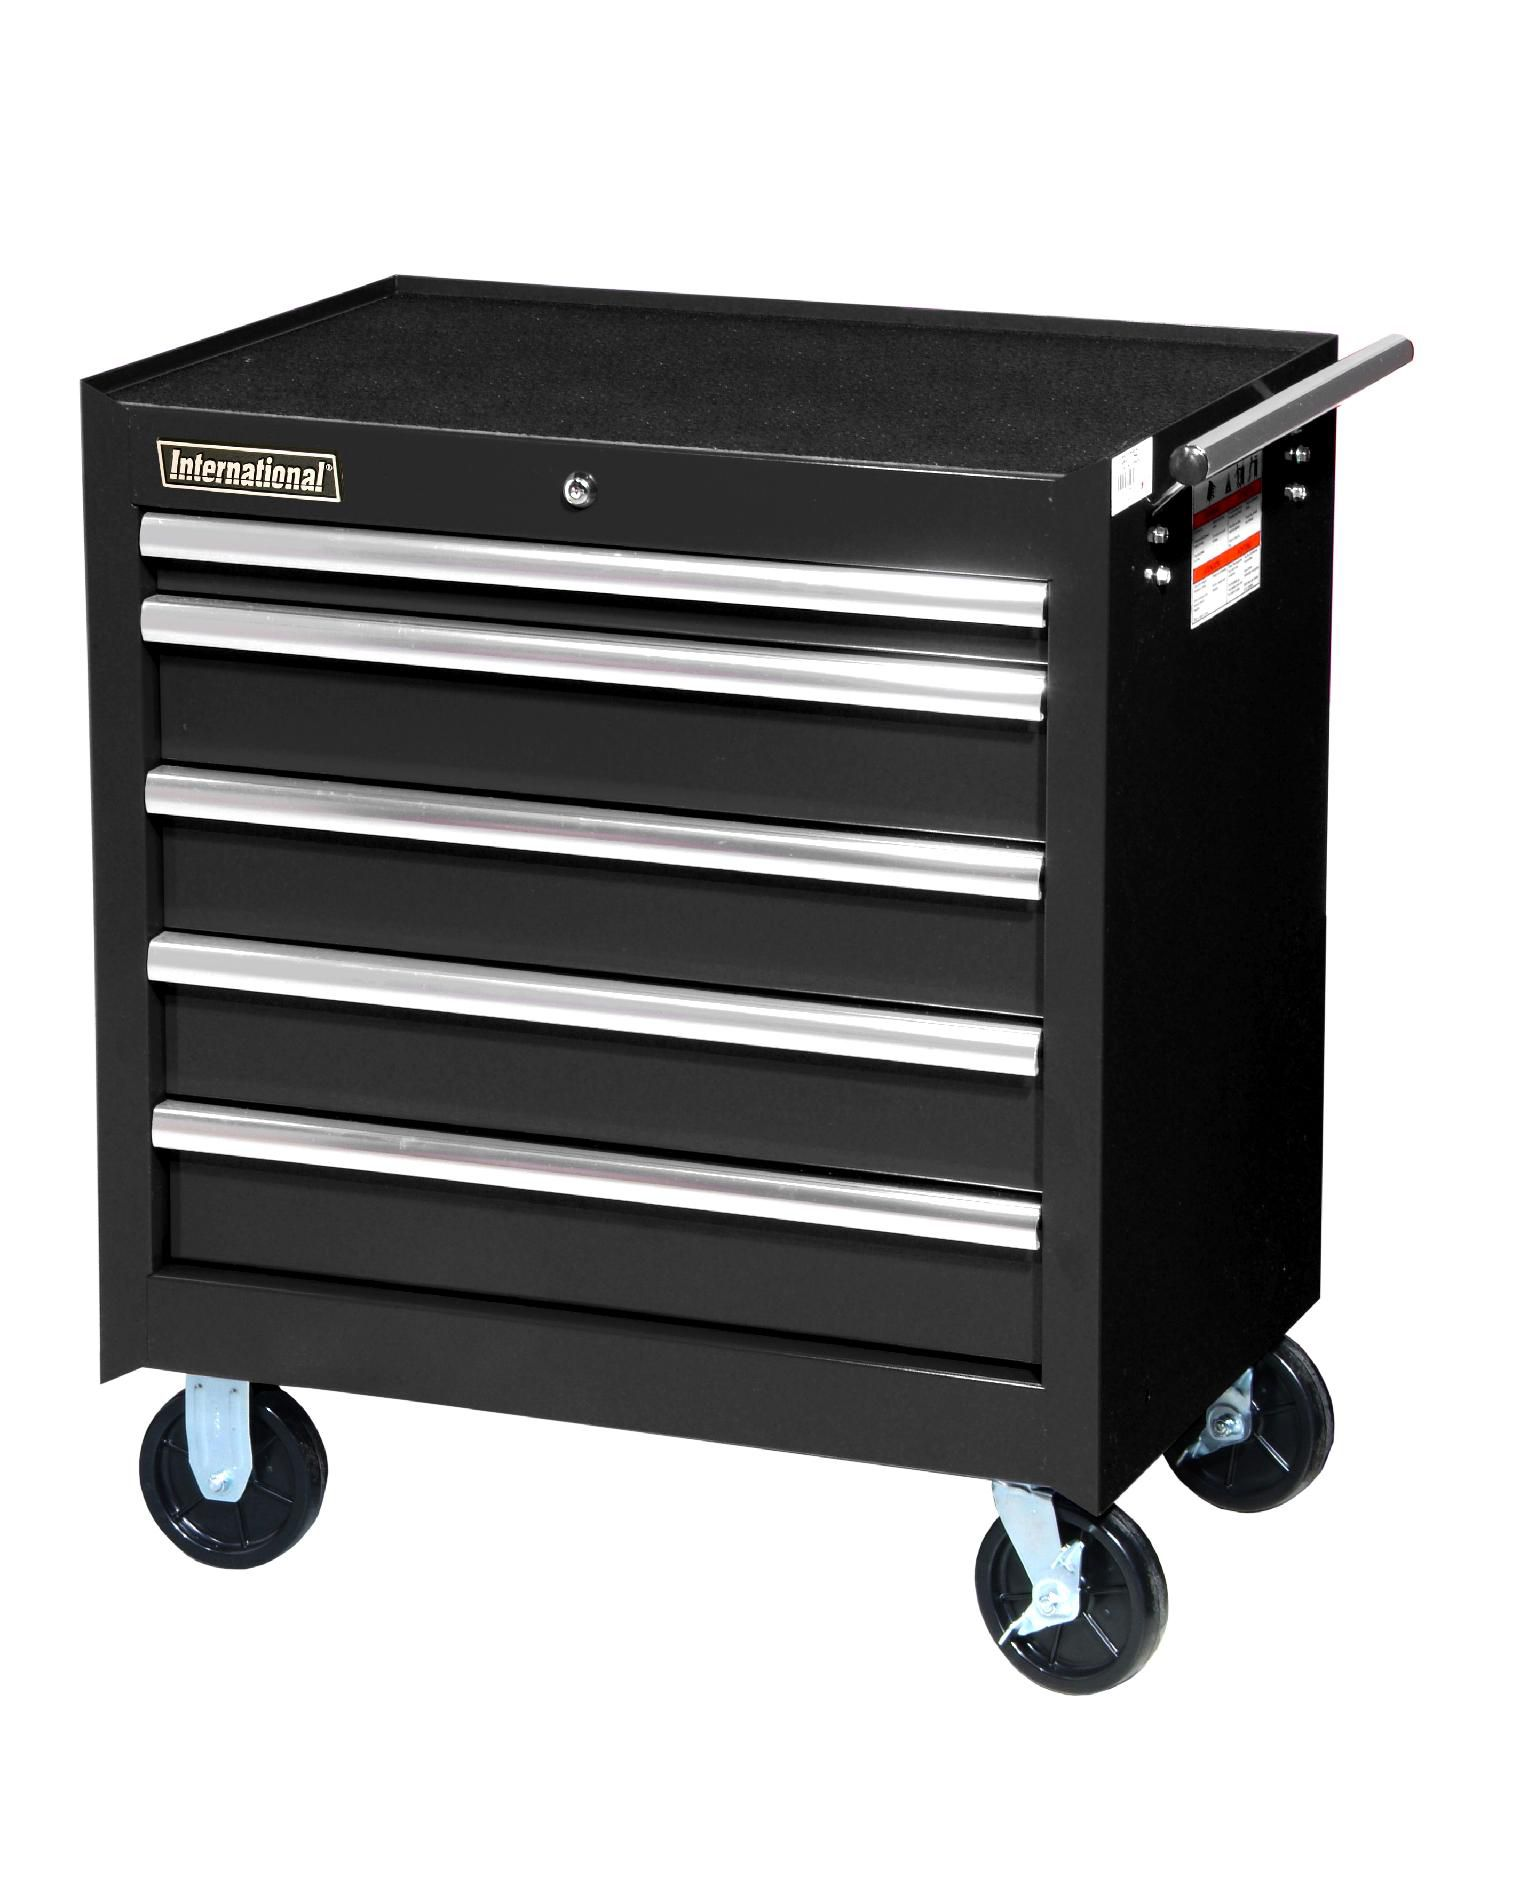 Nov 14, · craftsman tool box lock chest on sears wheels replacement casters portable boxes,craftsman plastic tool box with wheels 8 drawer cabinet bottom caster replacement,sears tool box wheels craftsman portable boxes on pro accessories caster,sears craftsman tool boxes on wheels small box replacement casters,craftsman tool box replacement wheels portable boxes on sears .